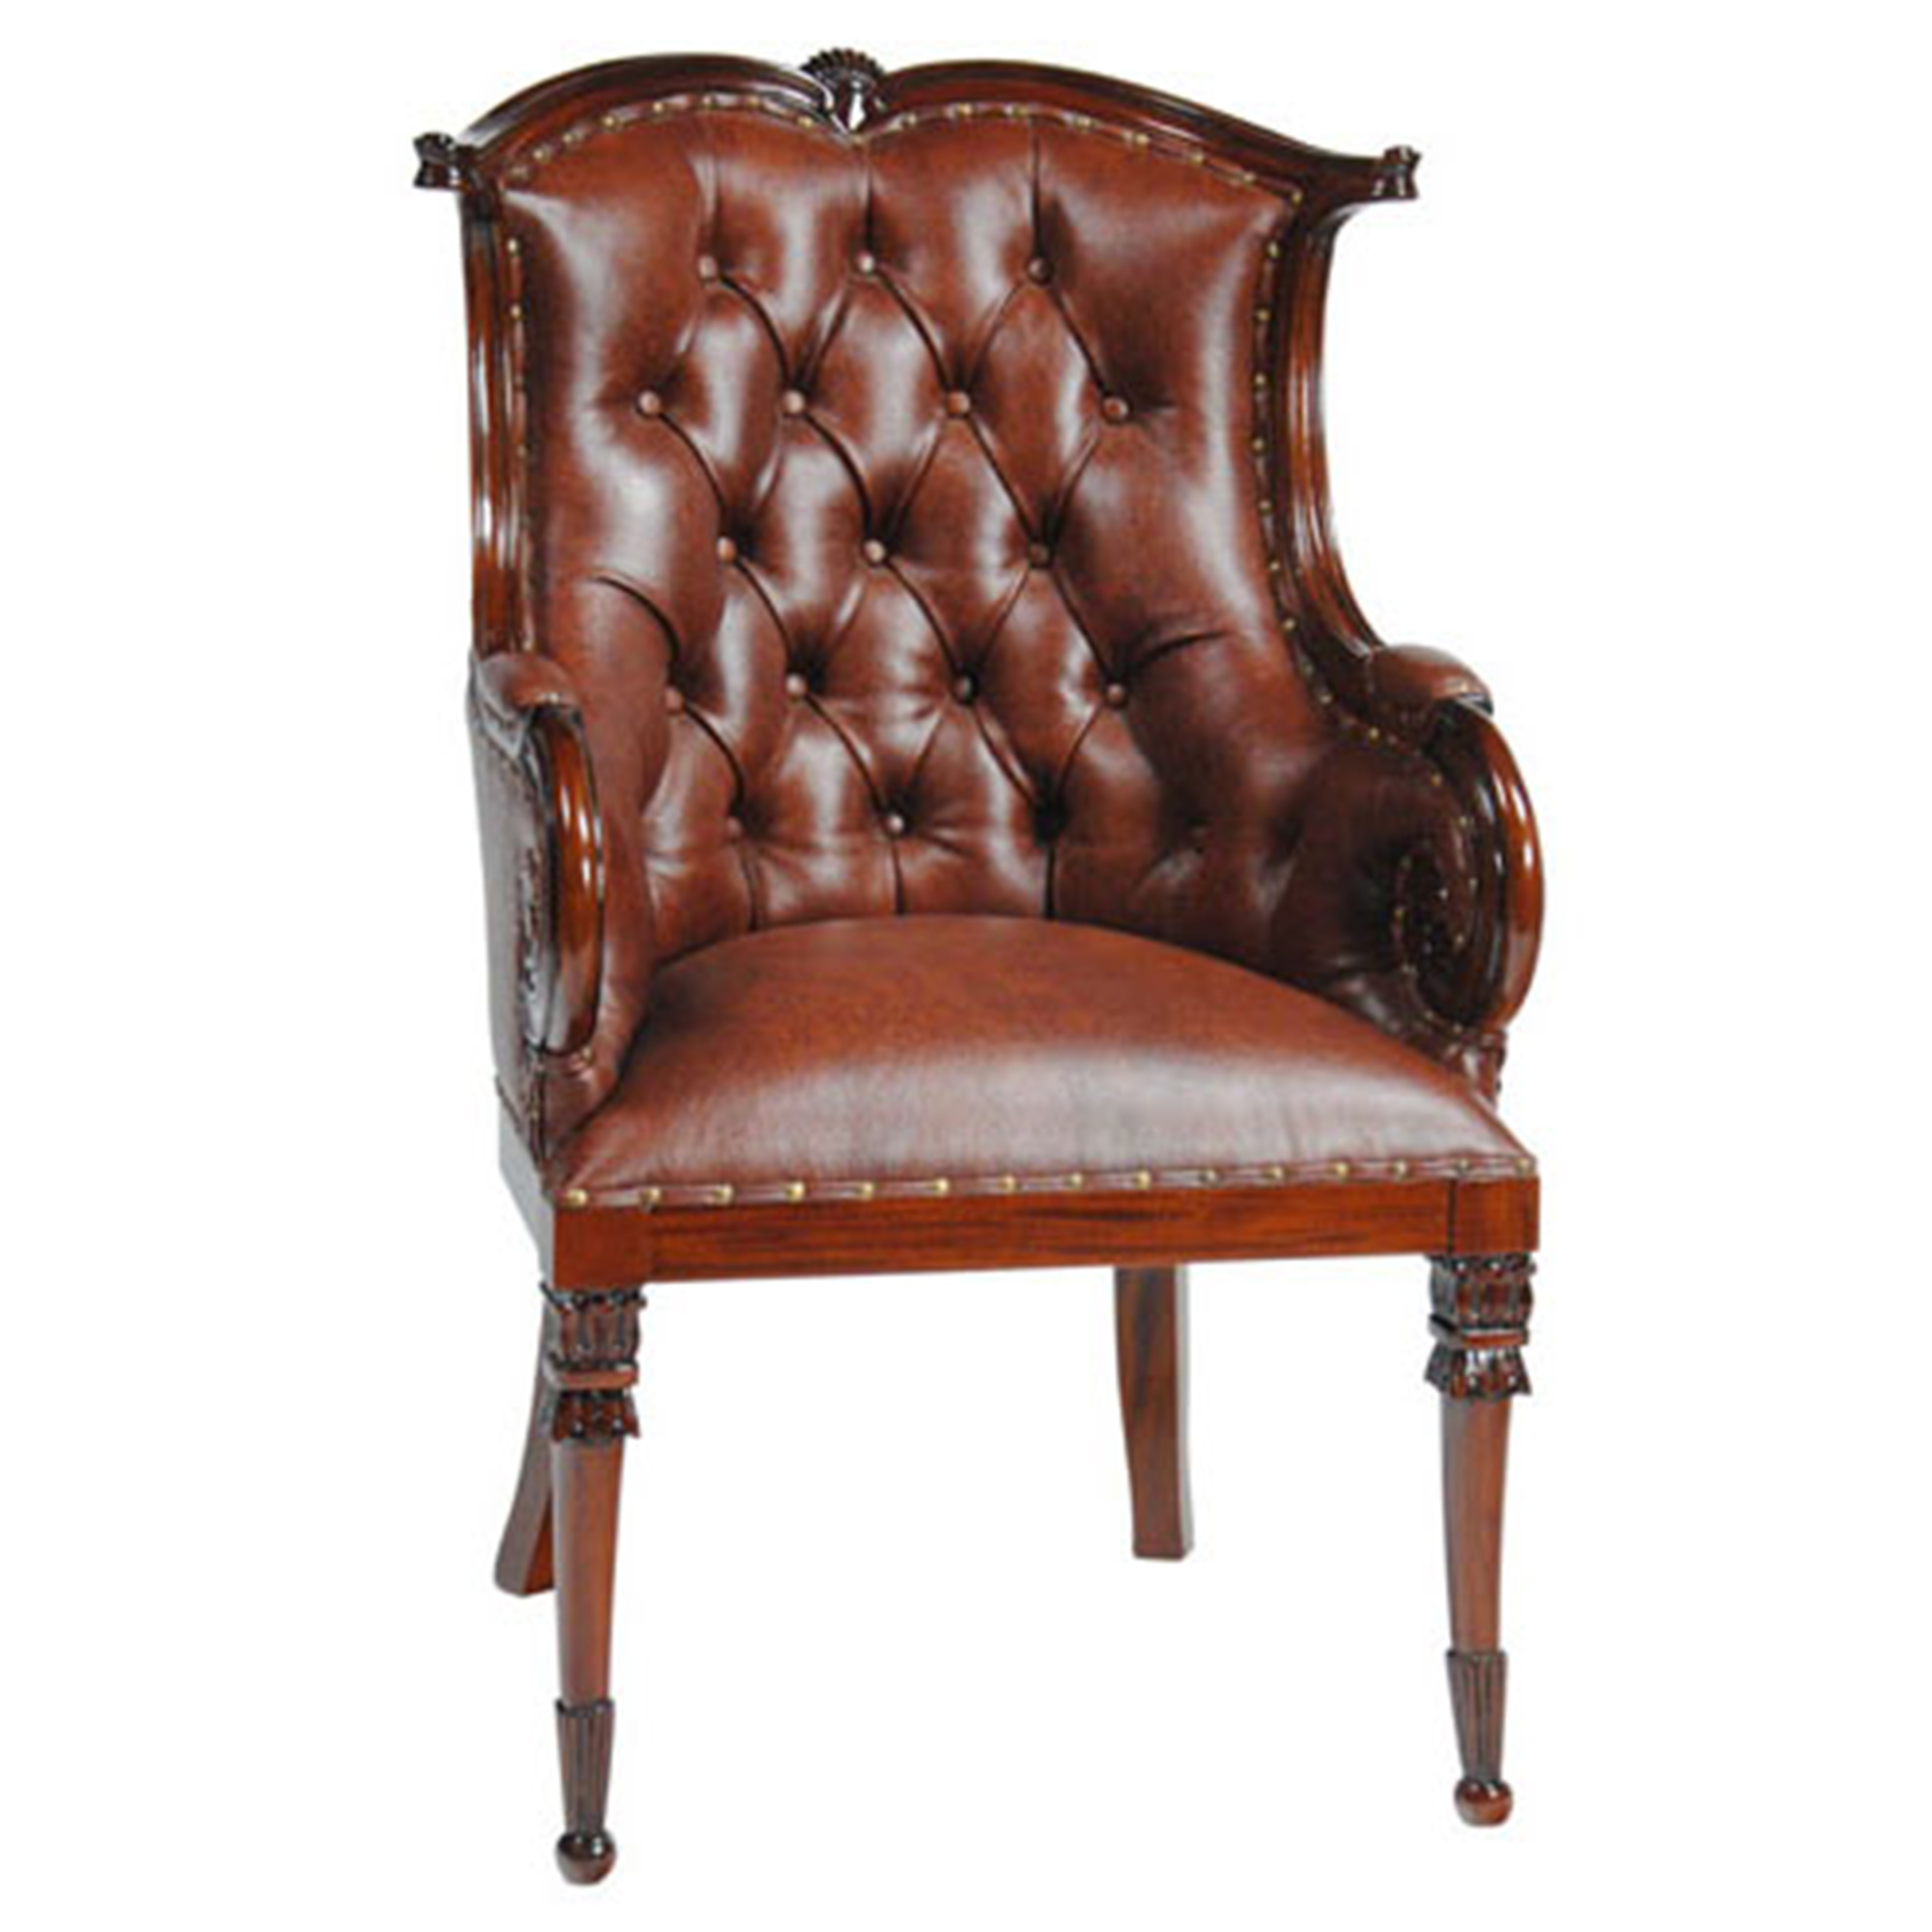 Home furniture dining room chairs leather arm for Leather dining room chairs with arms